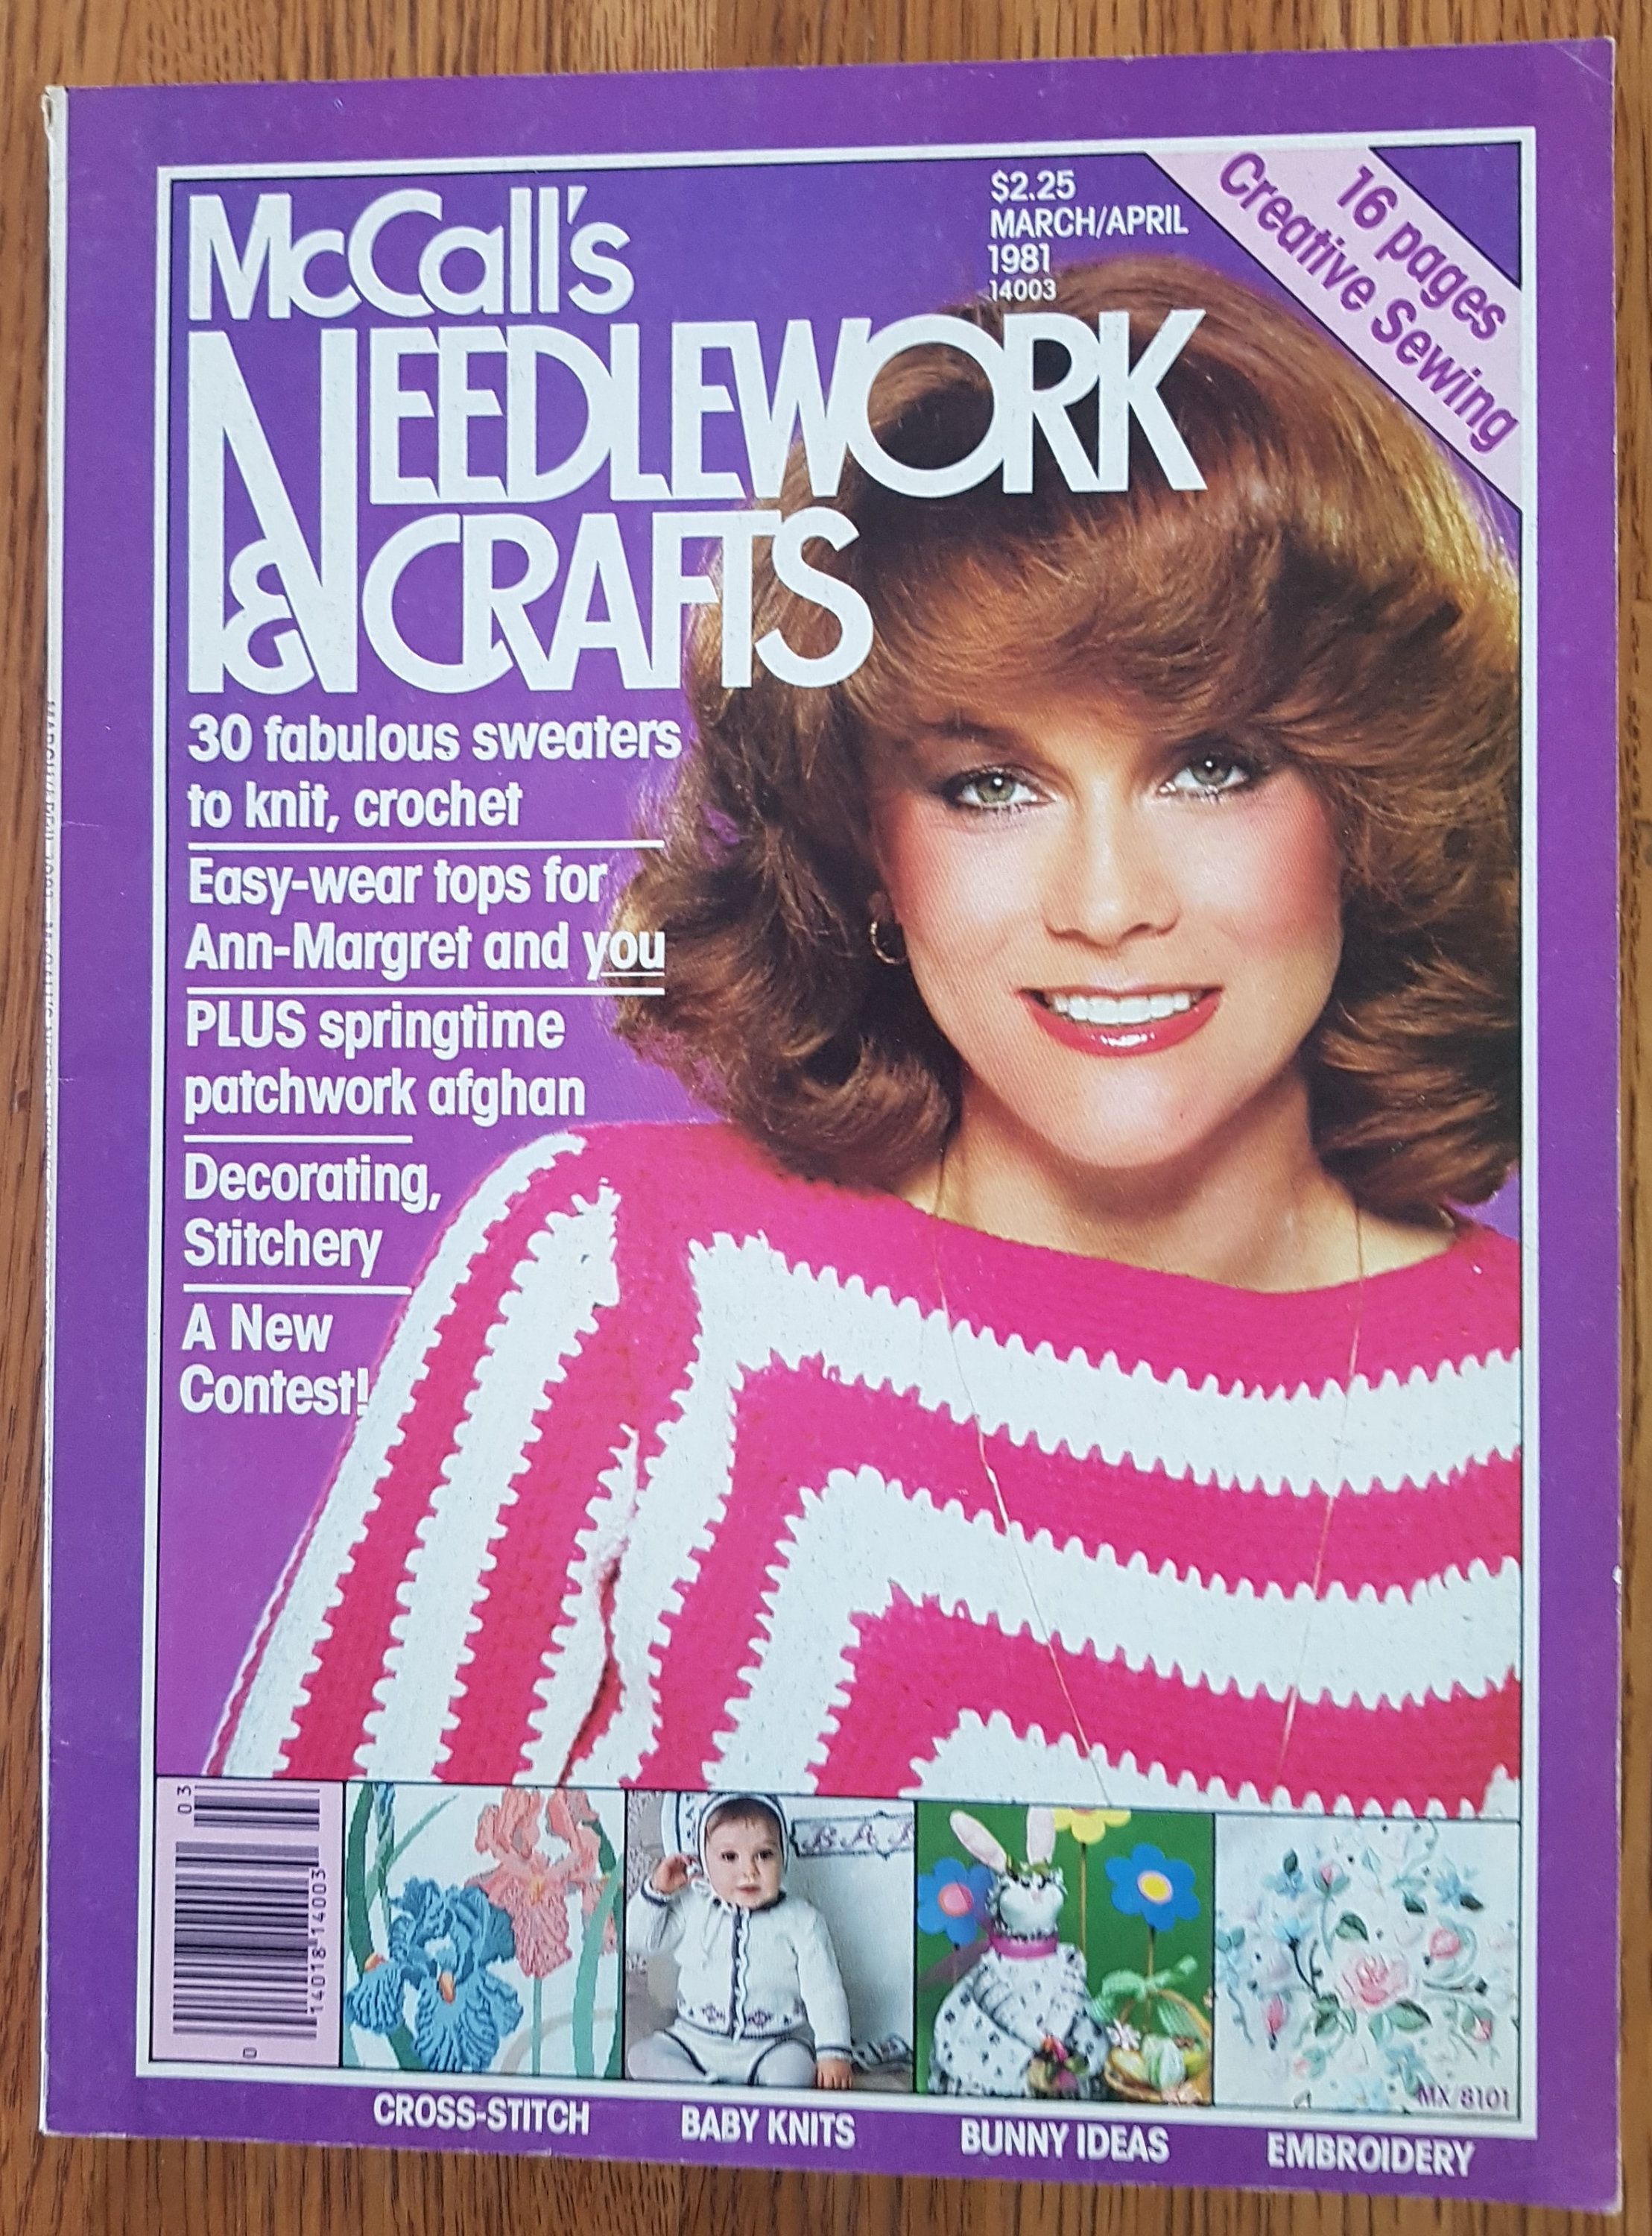 100s Needlework /& Crafts Ideas Vintage 1977 Better Homes and Gardens Magazine Quilting Needlepoint Macrame Weaving Embroidery Painting Knit